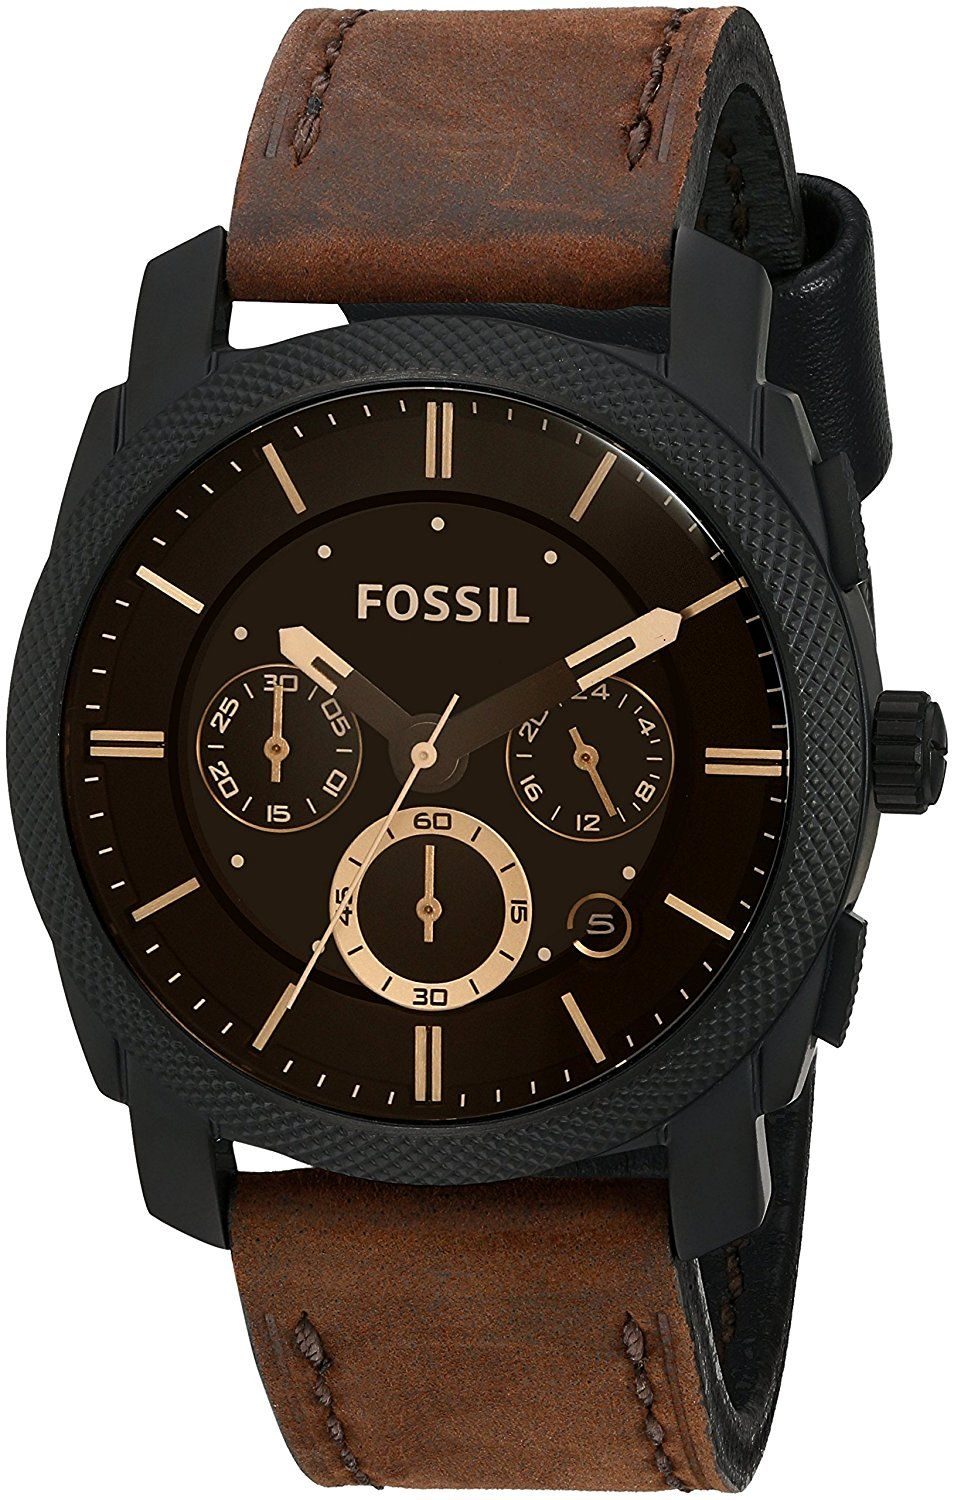 Fossil Men's FS4656 Analog Watch with Brown Band Fossil